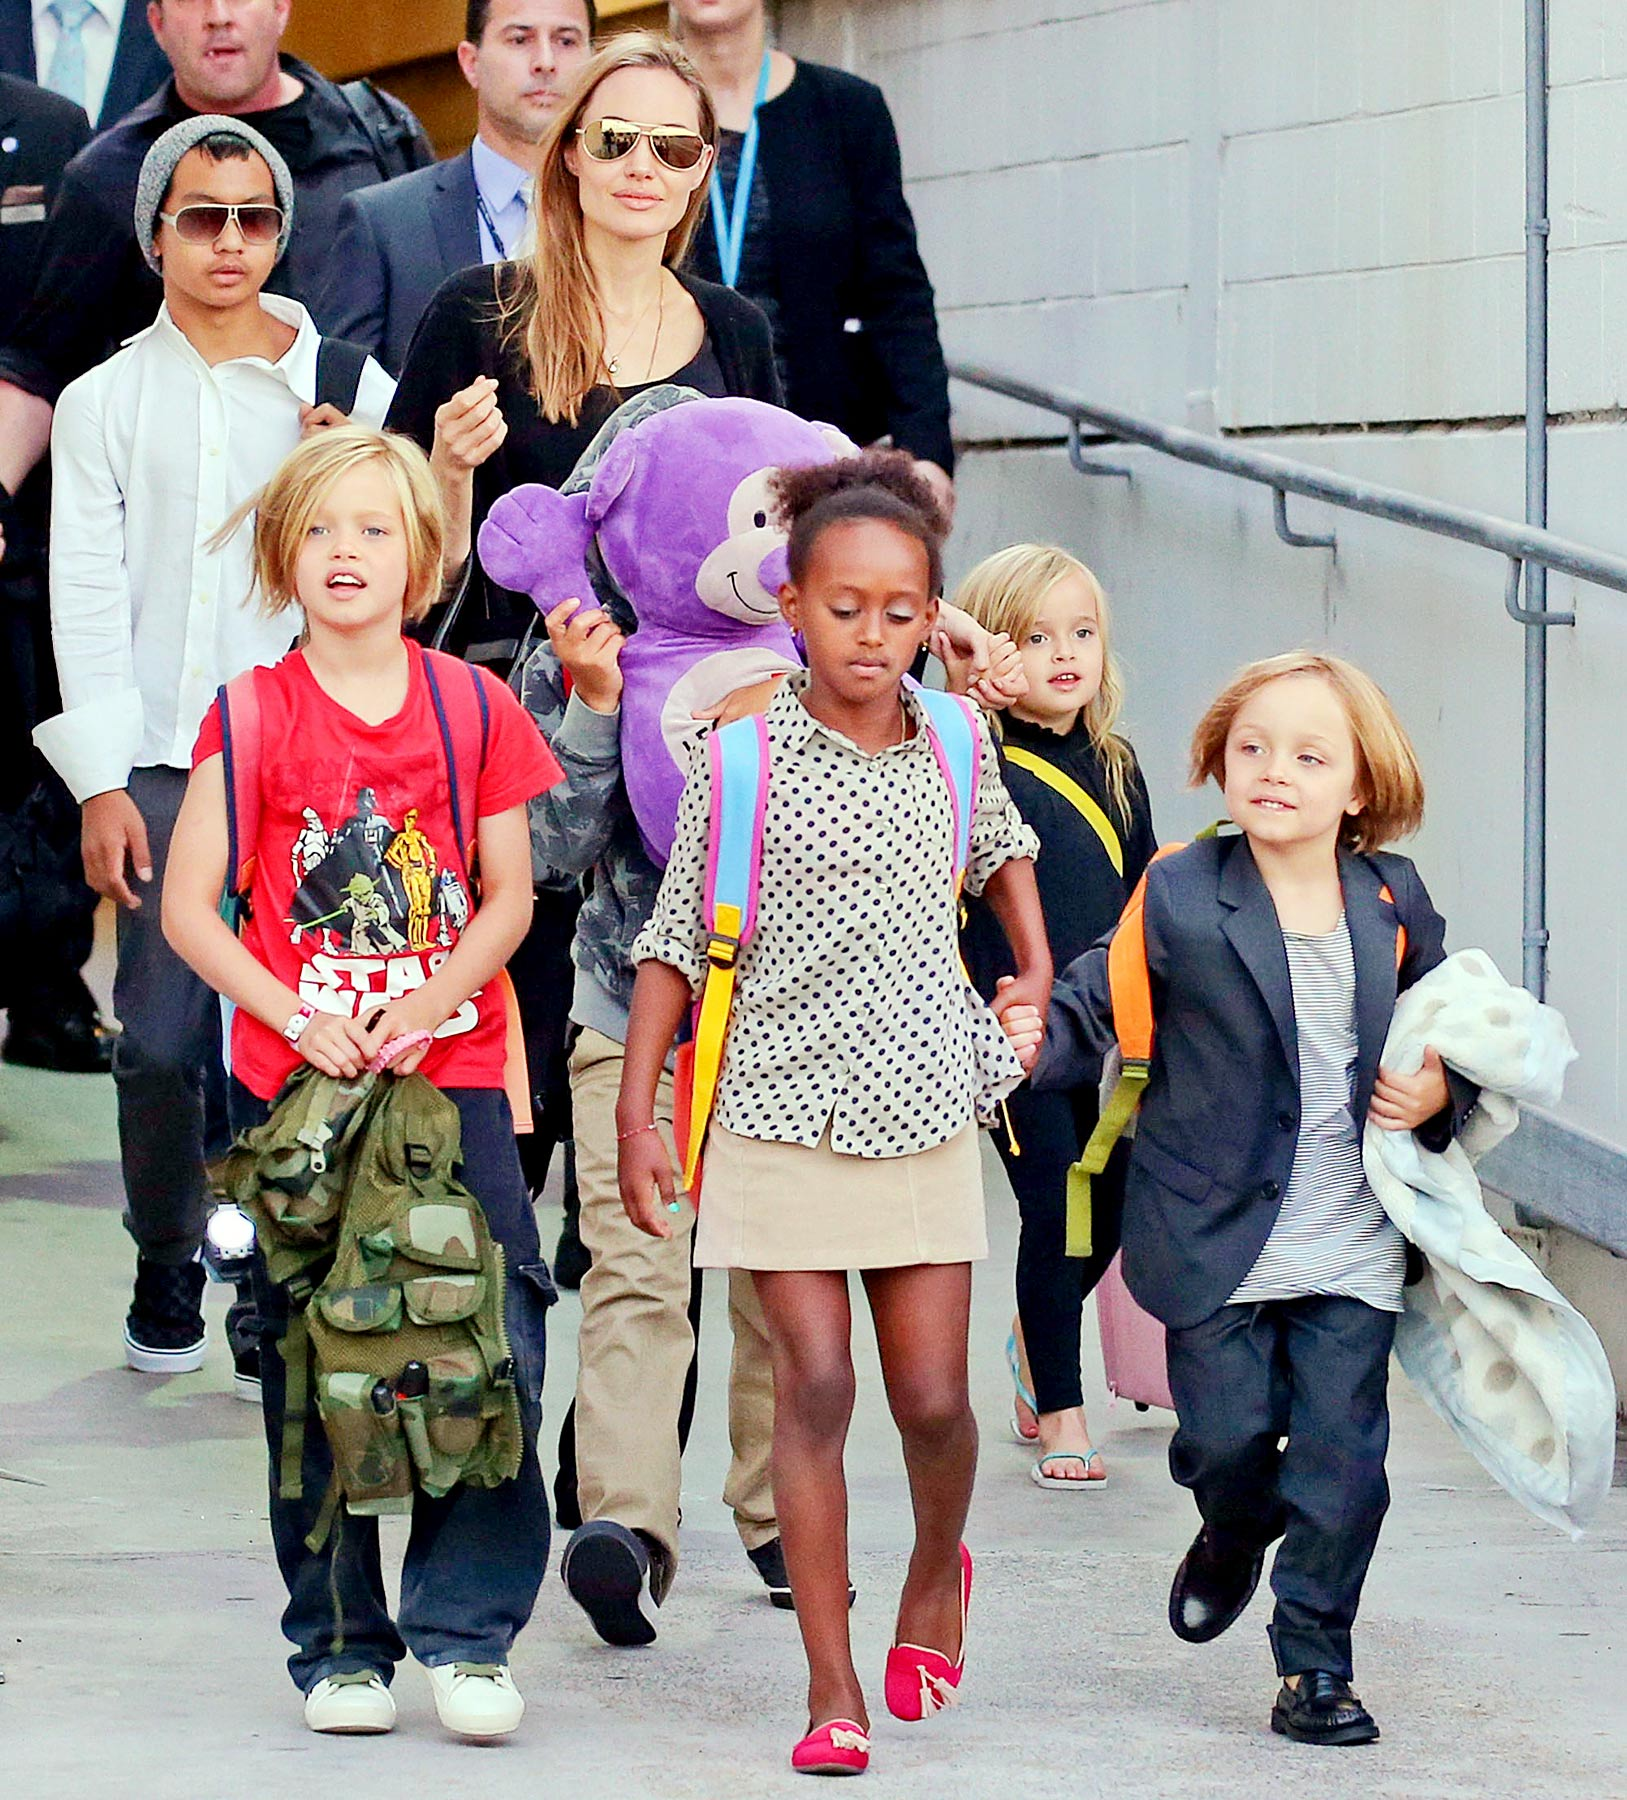 As the most famous couple of Hollywood is raising their children